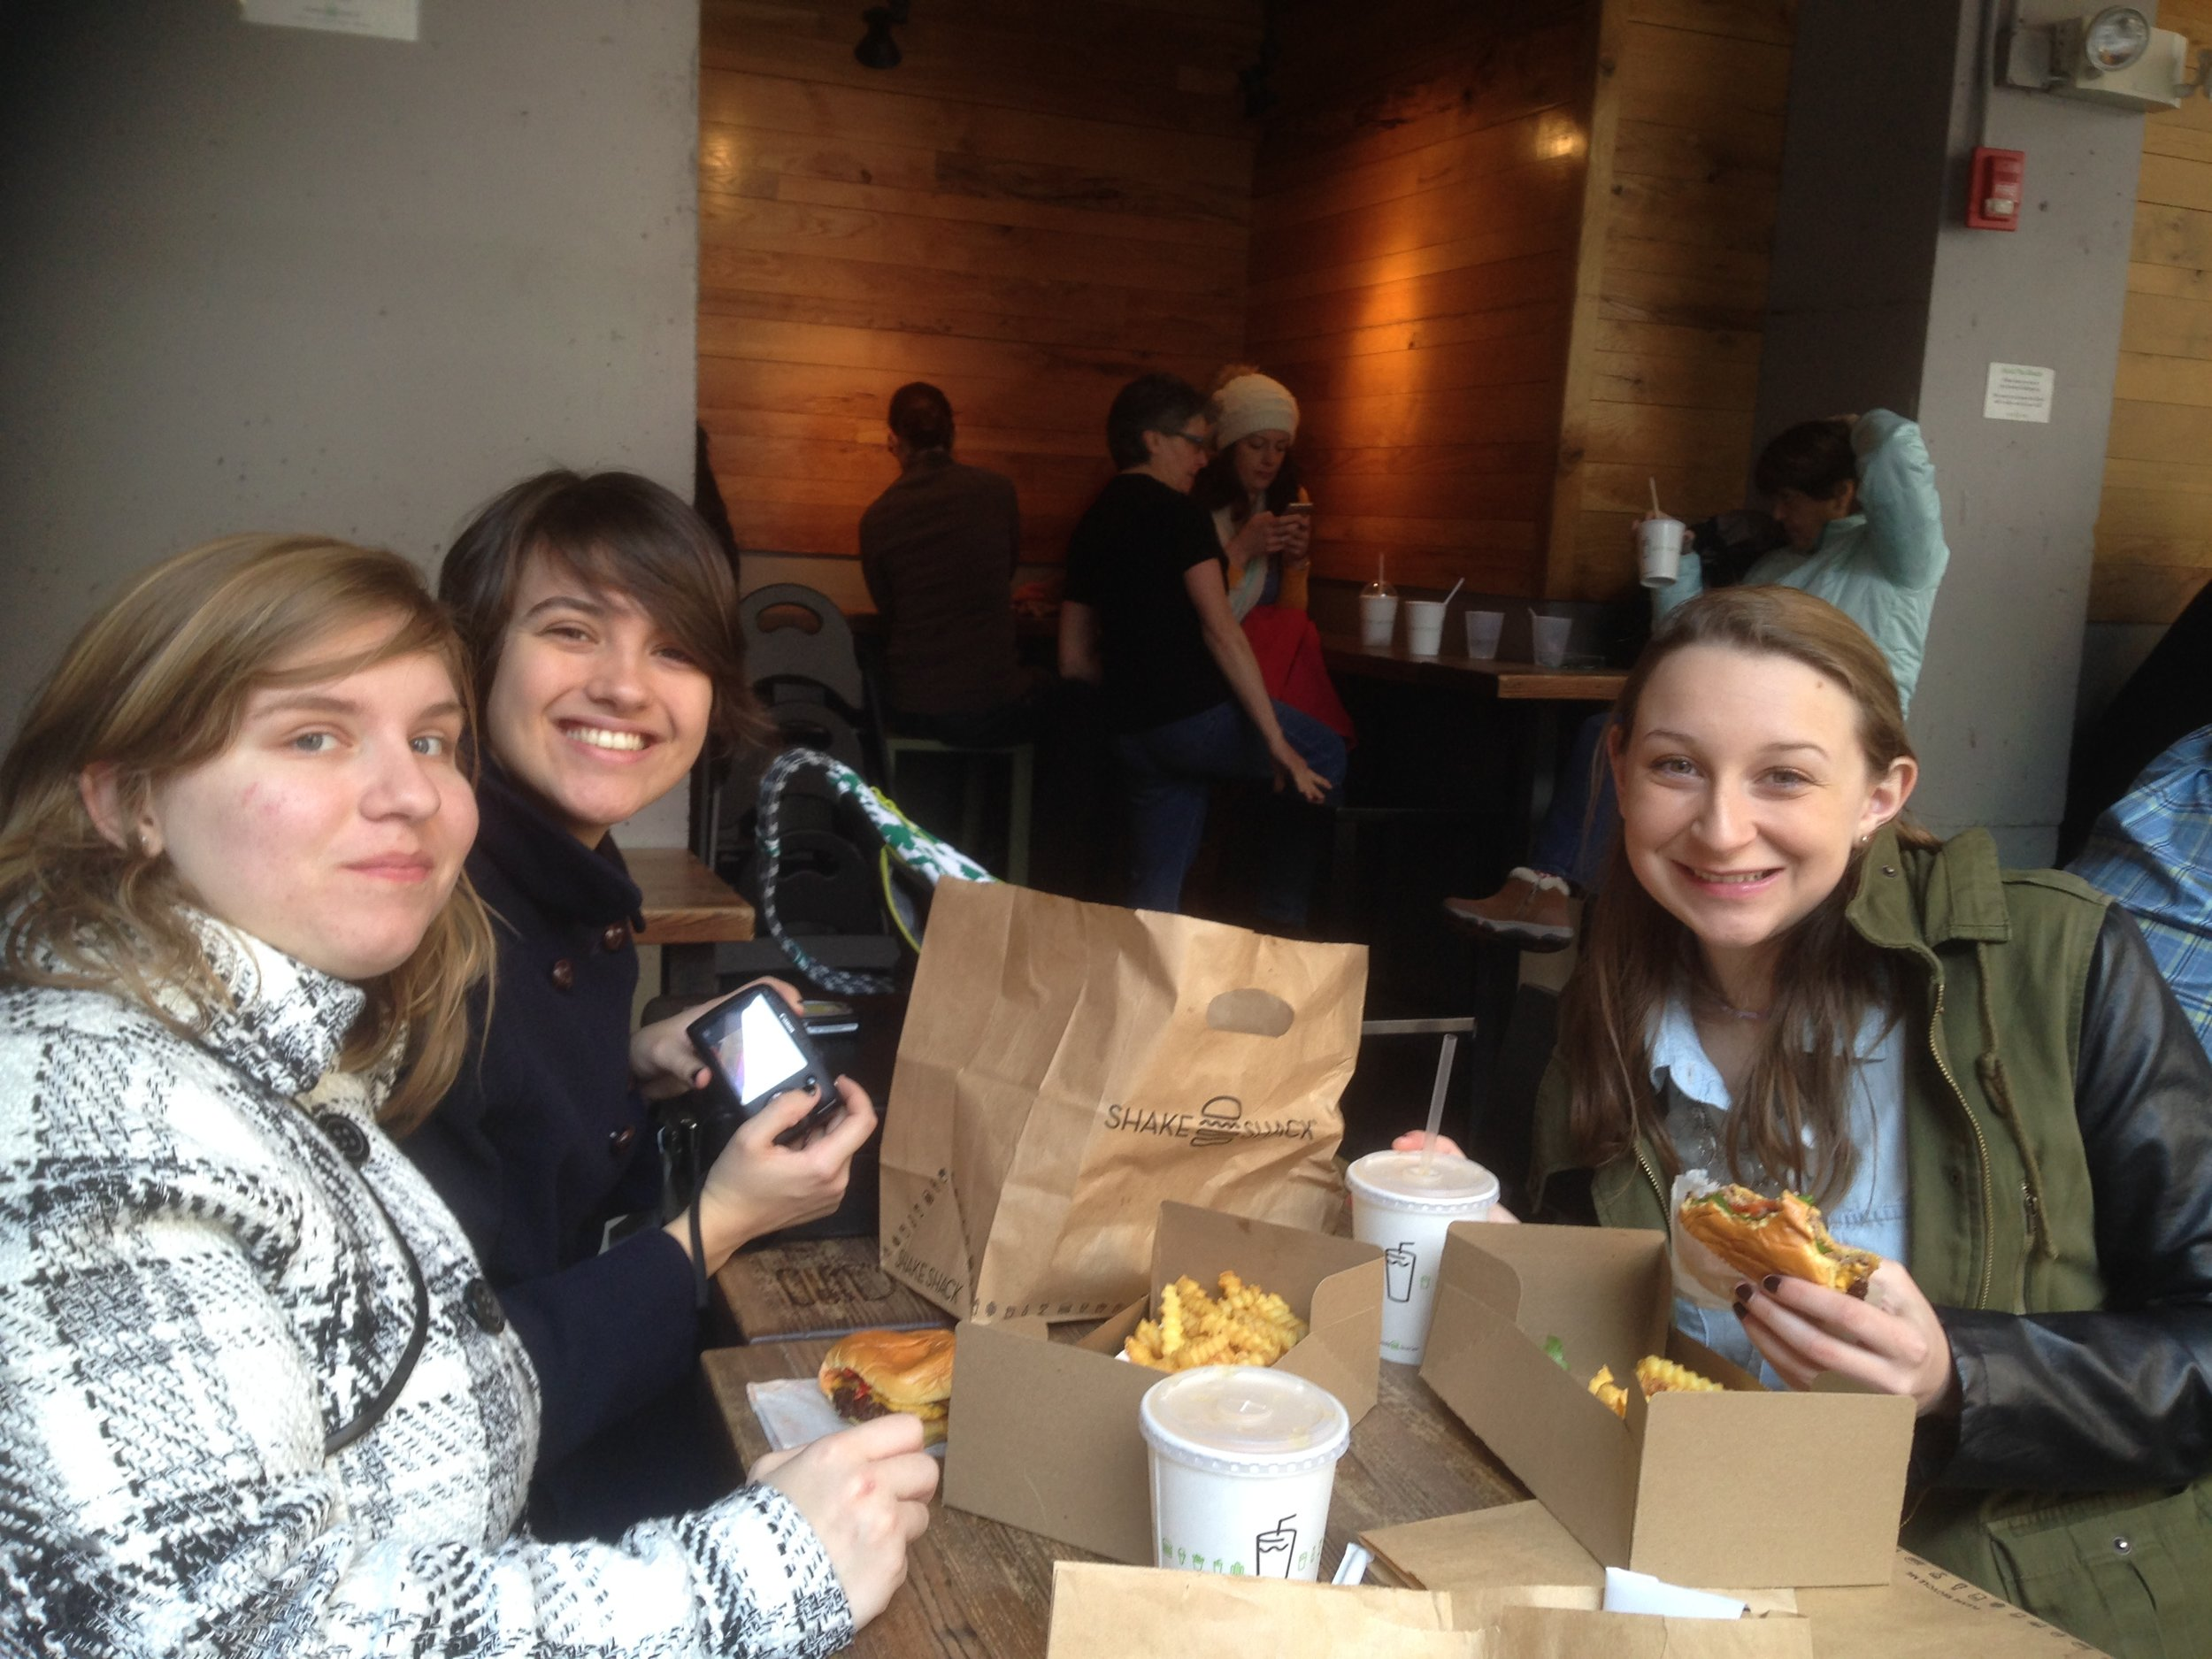 Being happy at Shake Shack!